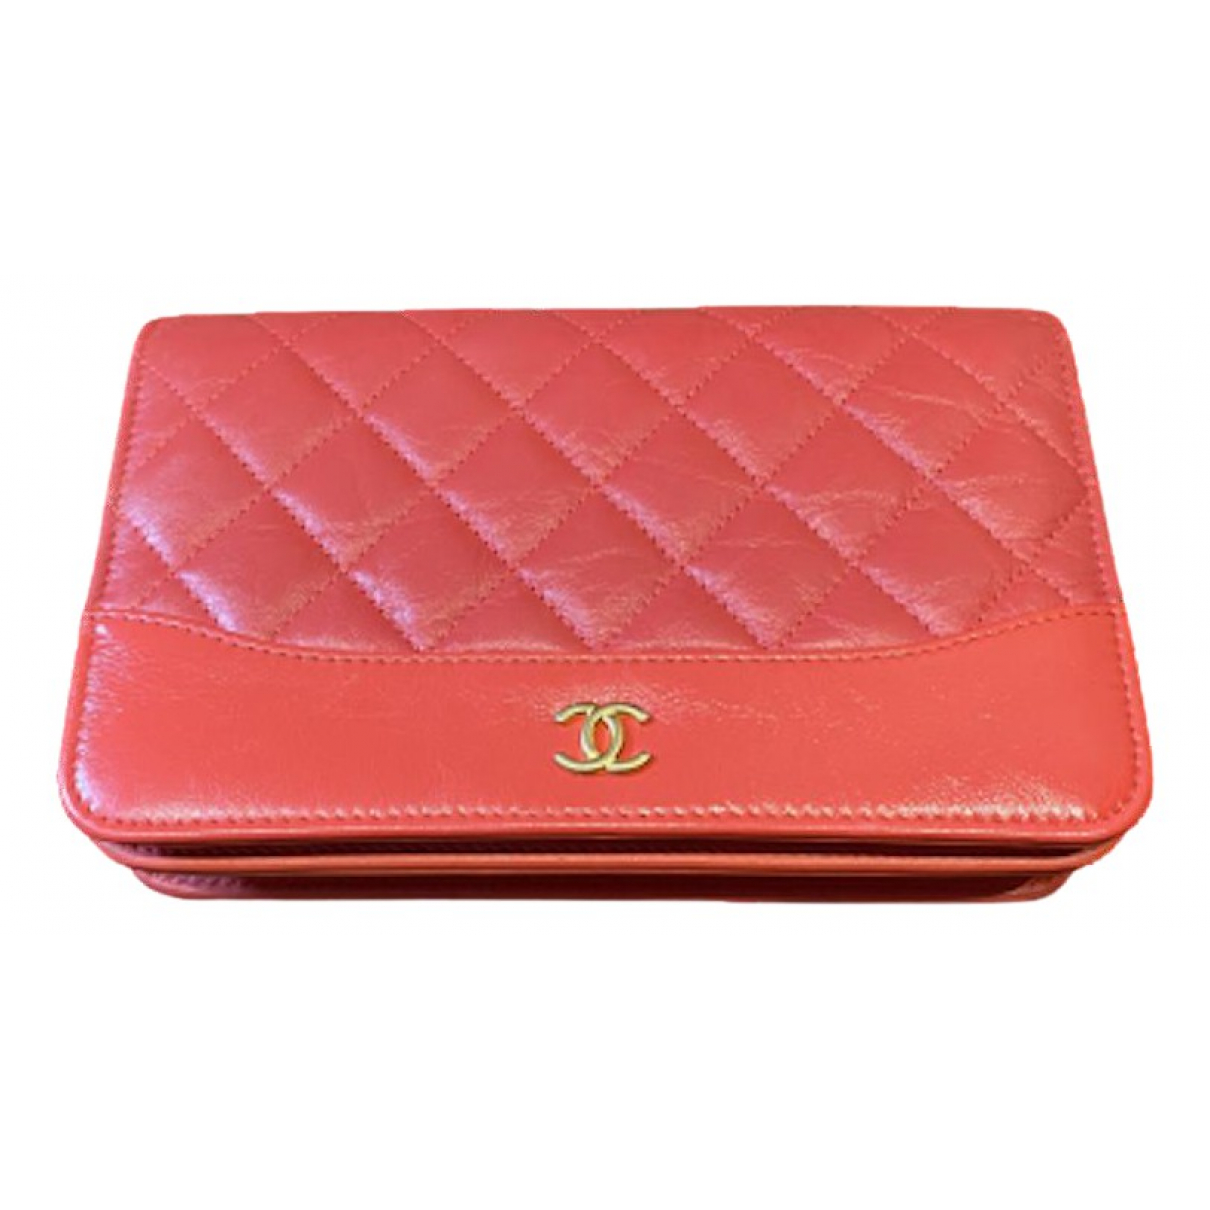 Chanel Wallet on Chain Pink Leather handbag for Women N